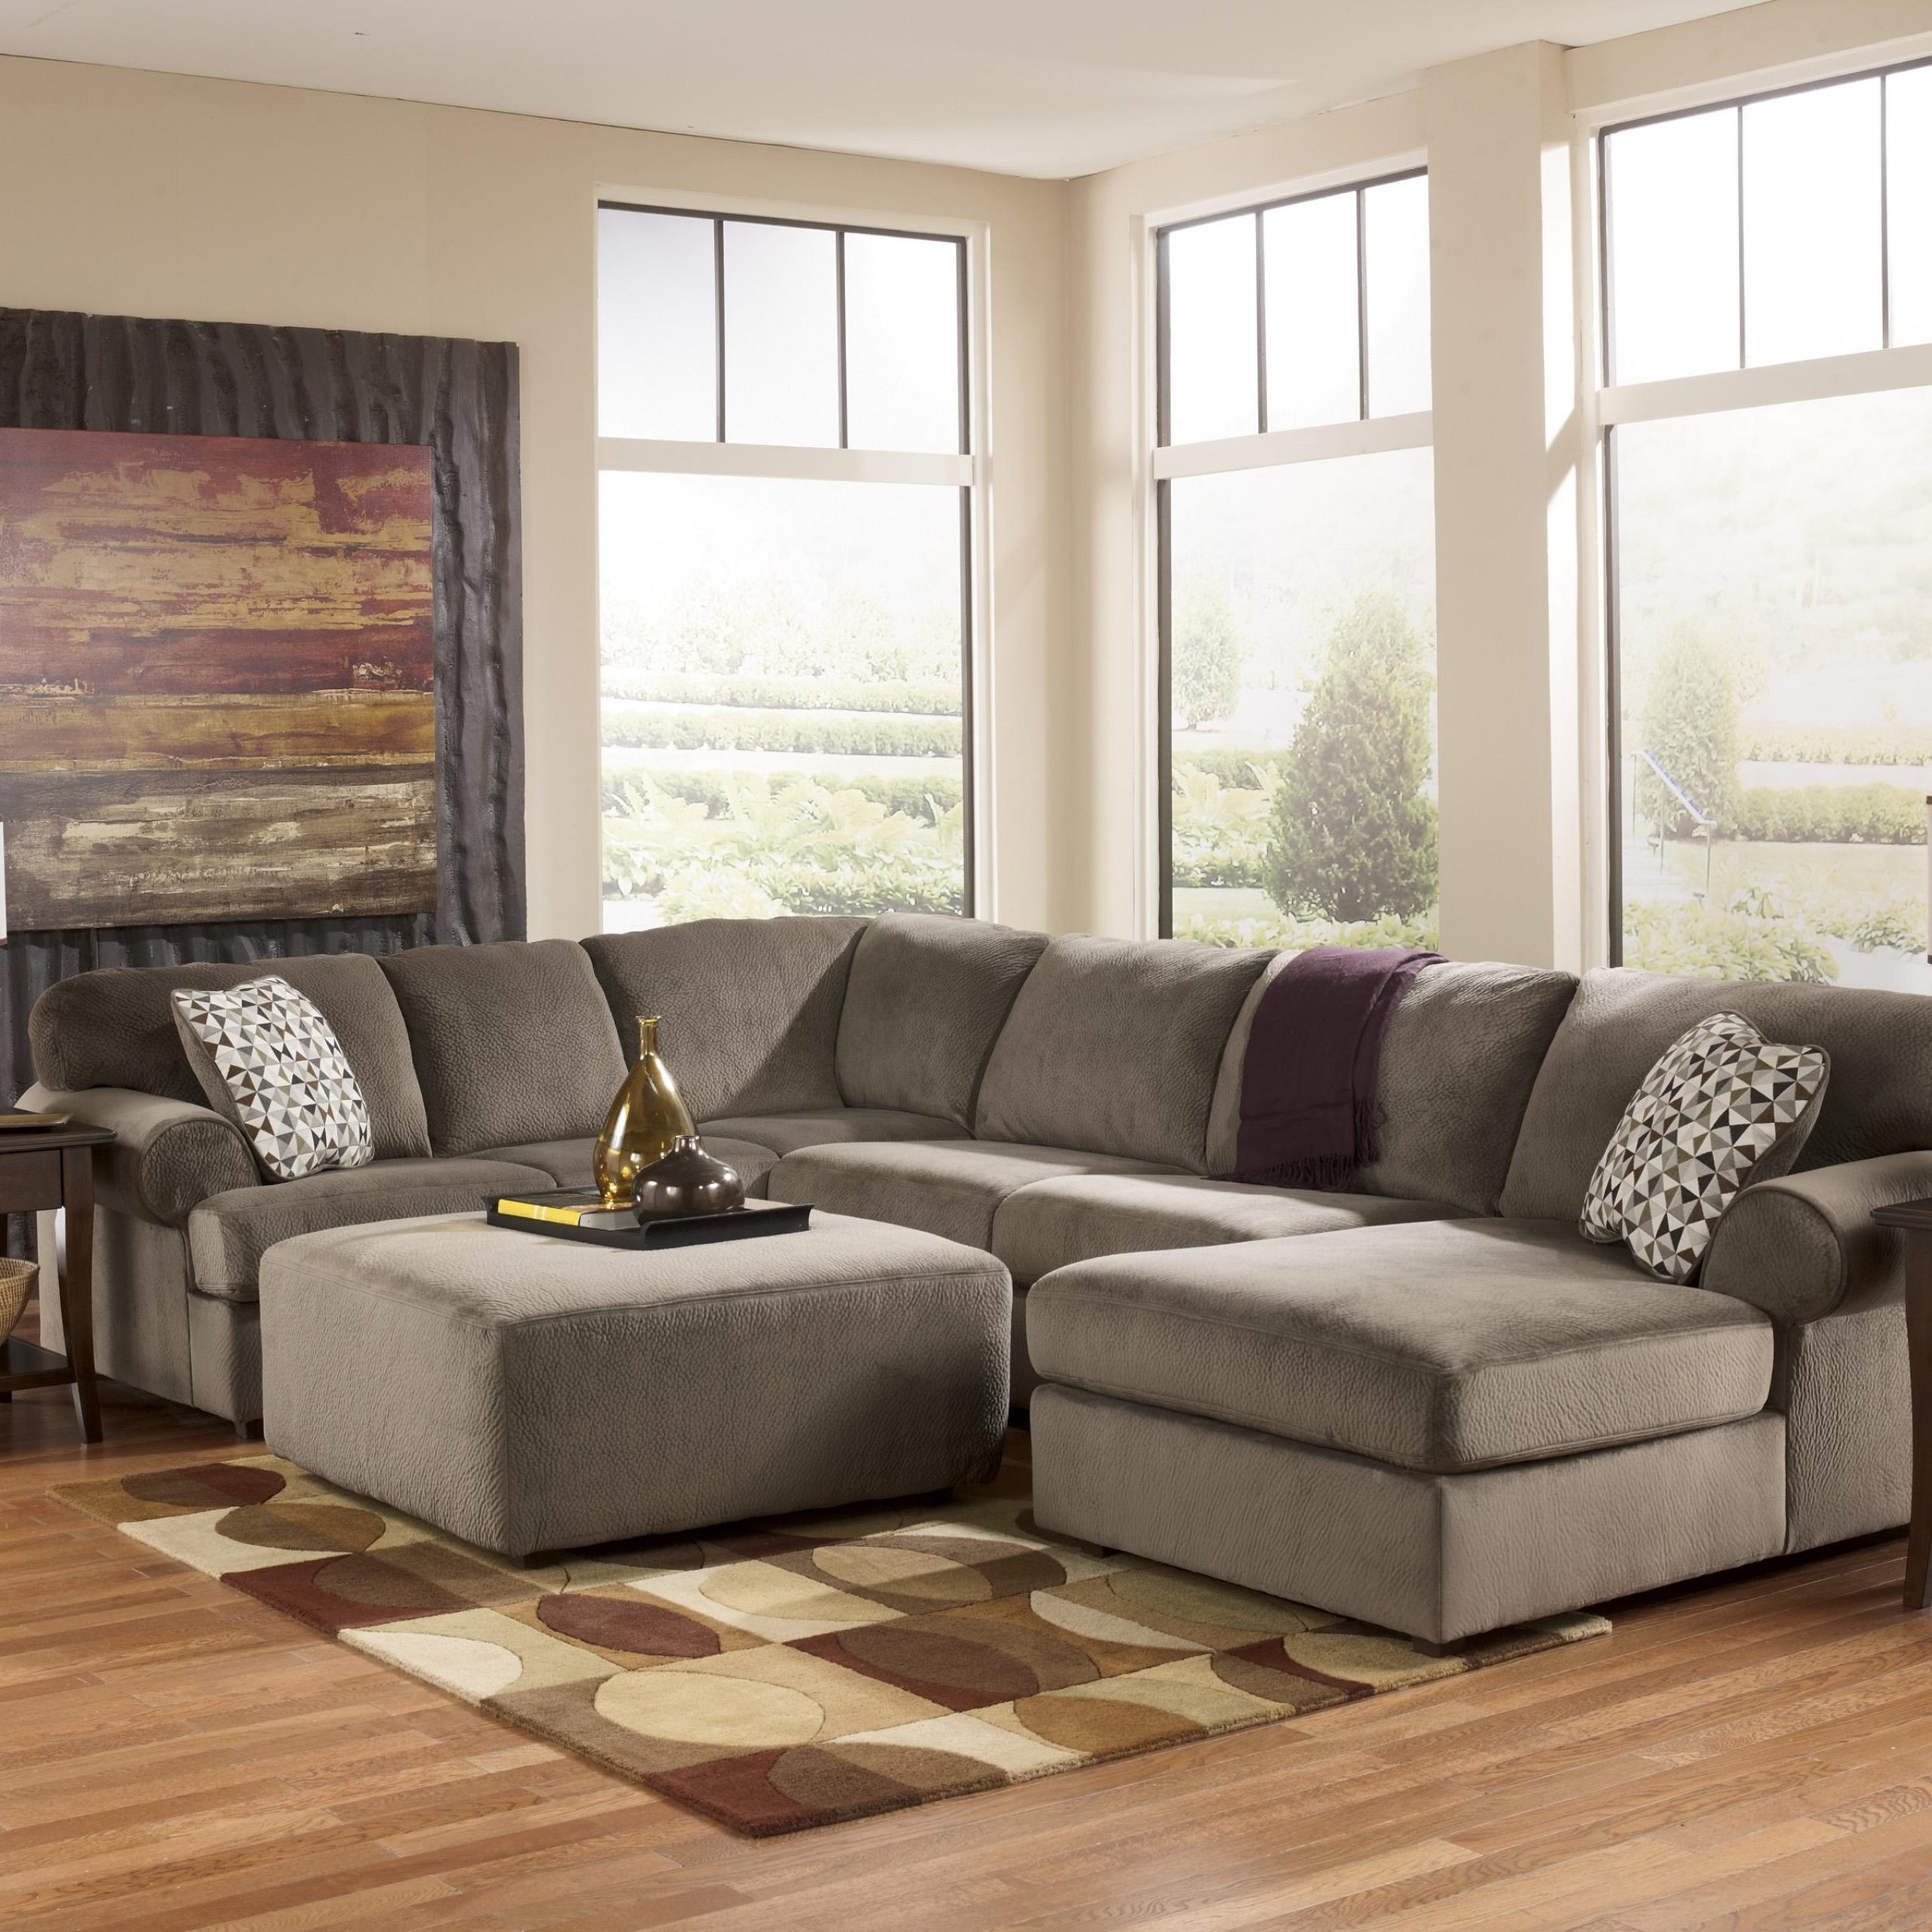 Favorite Casual Sectional Sofa With Left Chaisesignature Design Pertaining To Hannah Left Sectional Sofas (View 20 of 20)